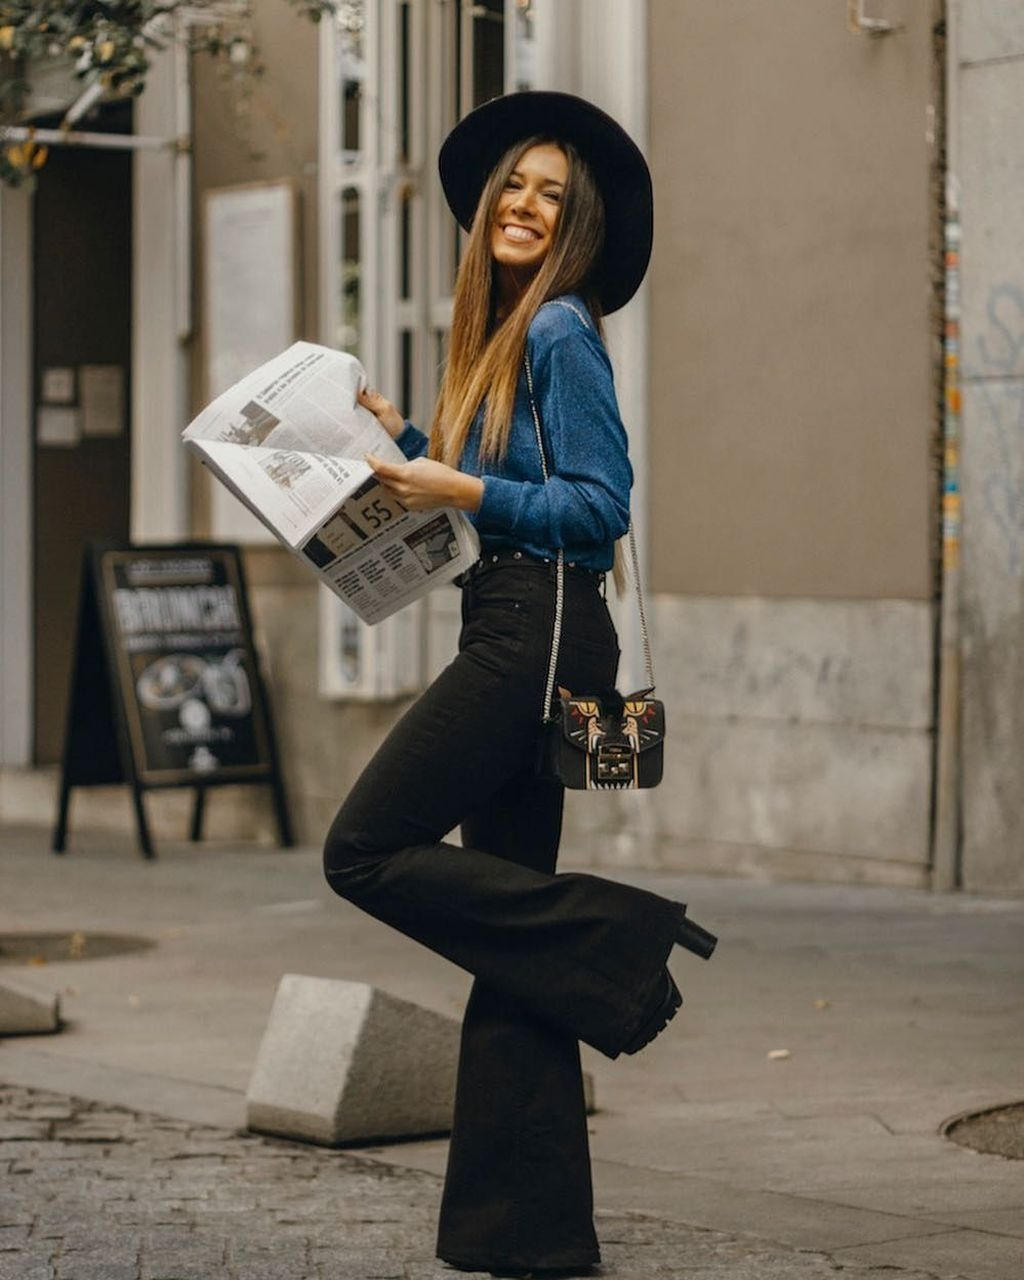 49 Best Flared Jeans Outfits Ideas For Fall That You Must Try Flair Jeans Outfit Flare Jeans Outfit Flare Jeans Outfit Winter